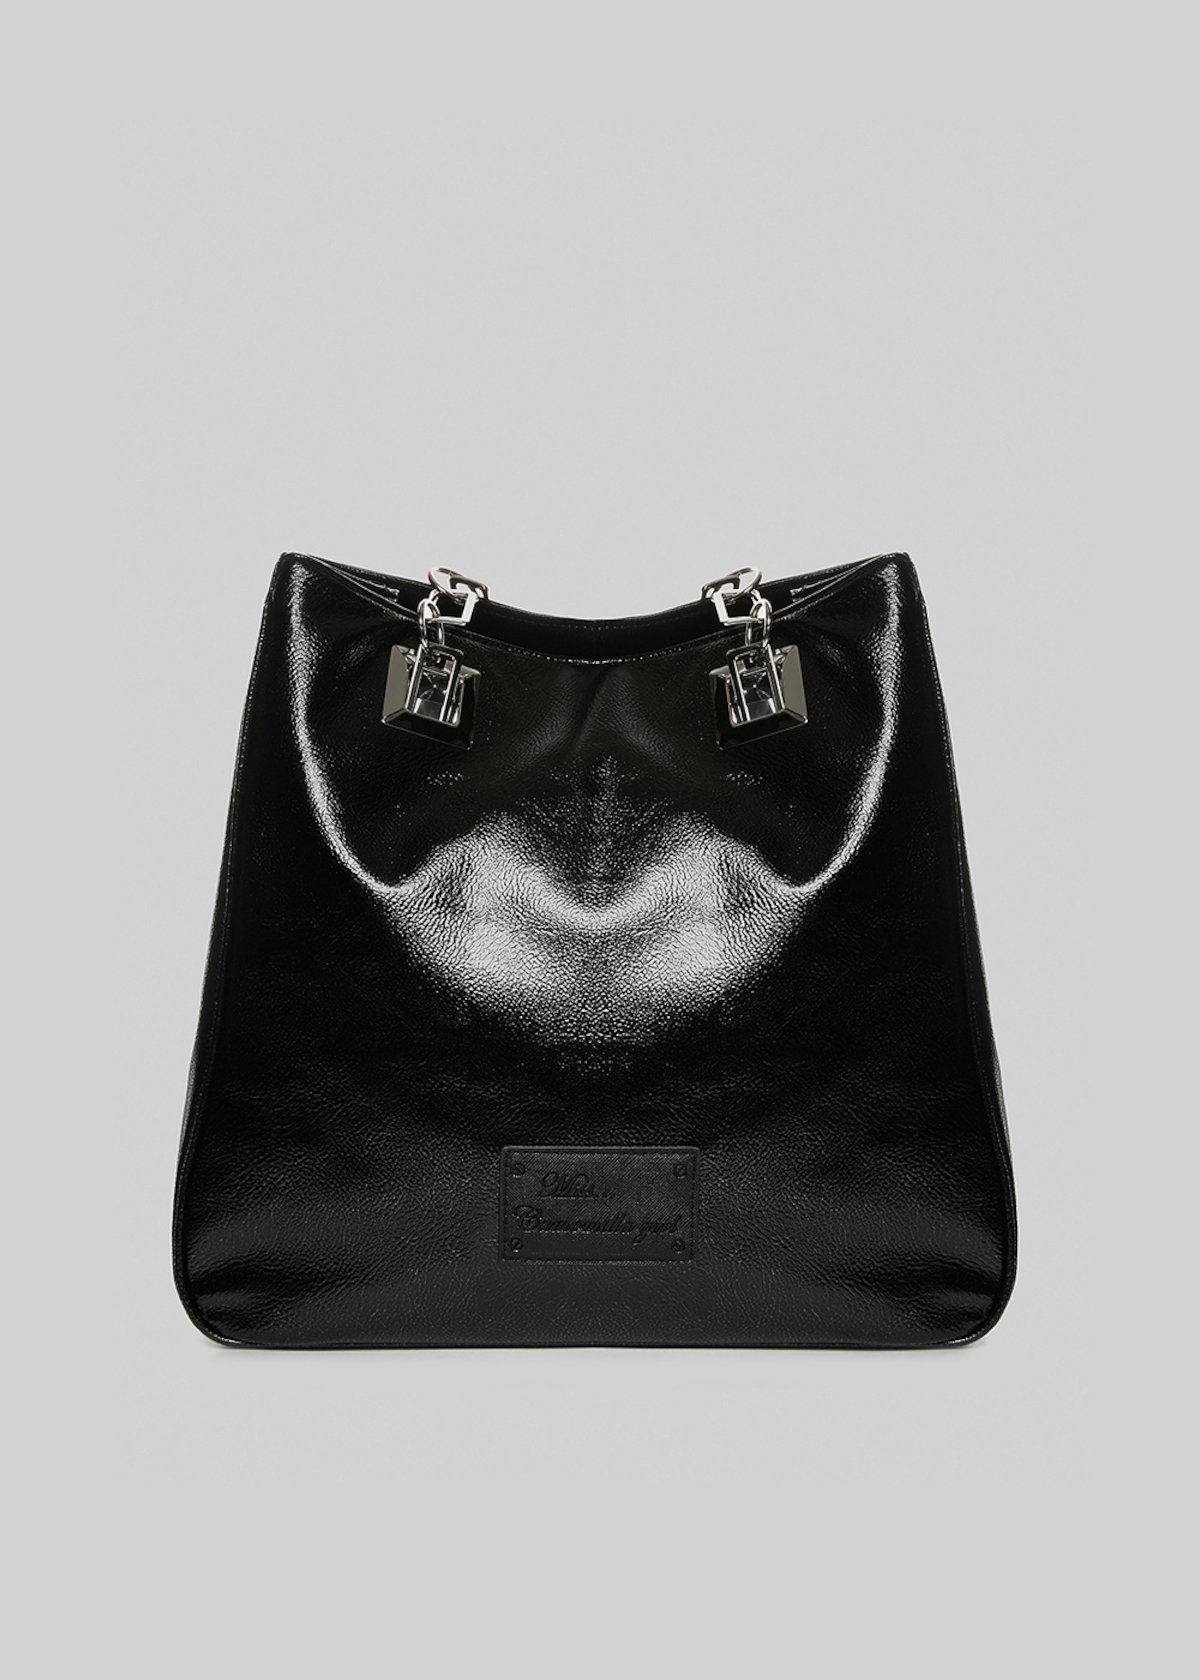 Mmissmeta shopping bag in faux leather total black metal - Black Metal - Woman - Category image